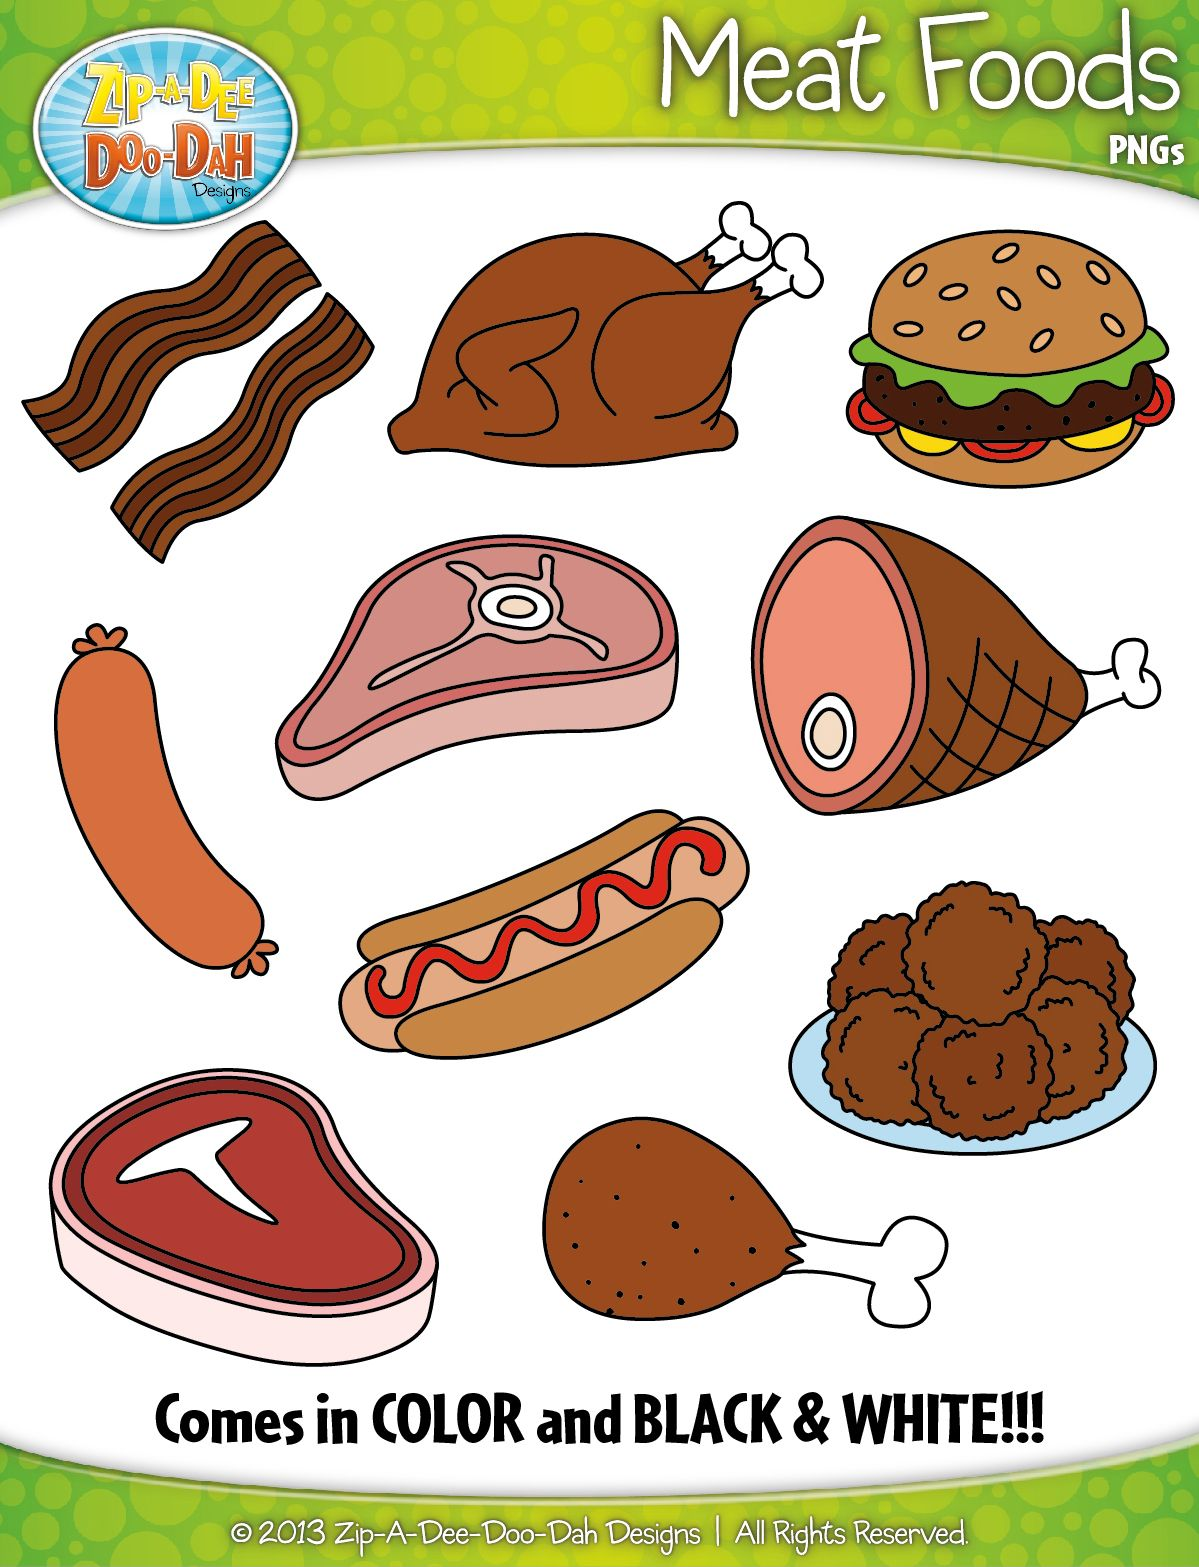 Buggy with food clipart royalty free Meat Foods Clipart {Zip-A-Dee-Doo-Dah Designs}   ppl   Food clipart ... royalty free